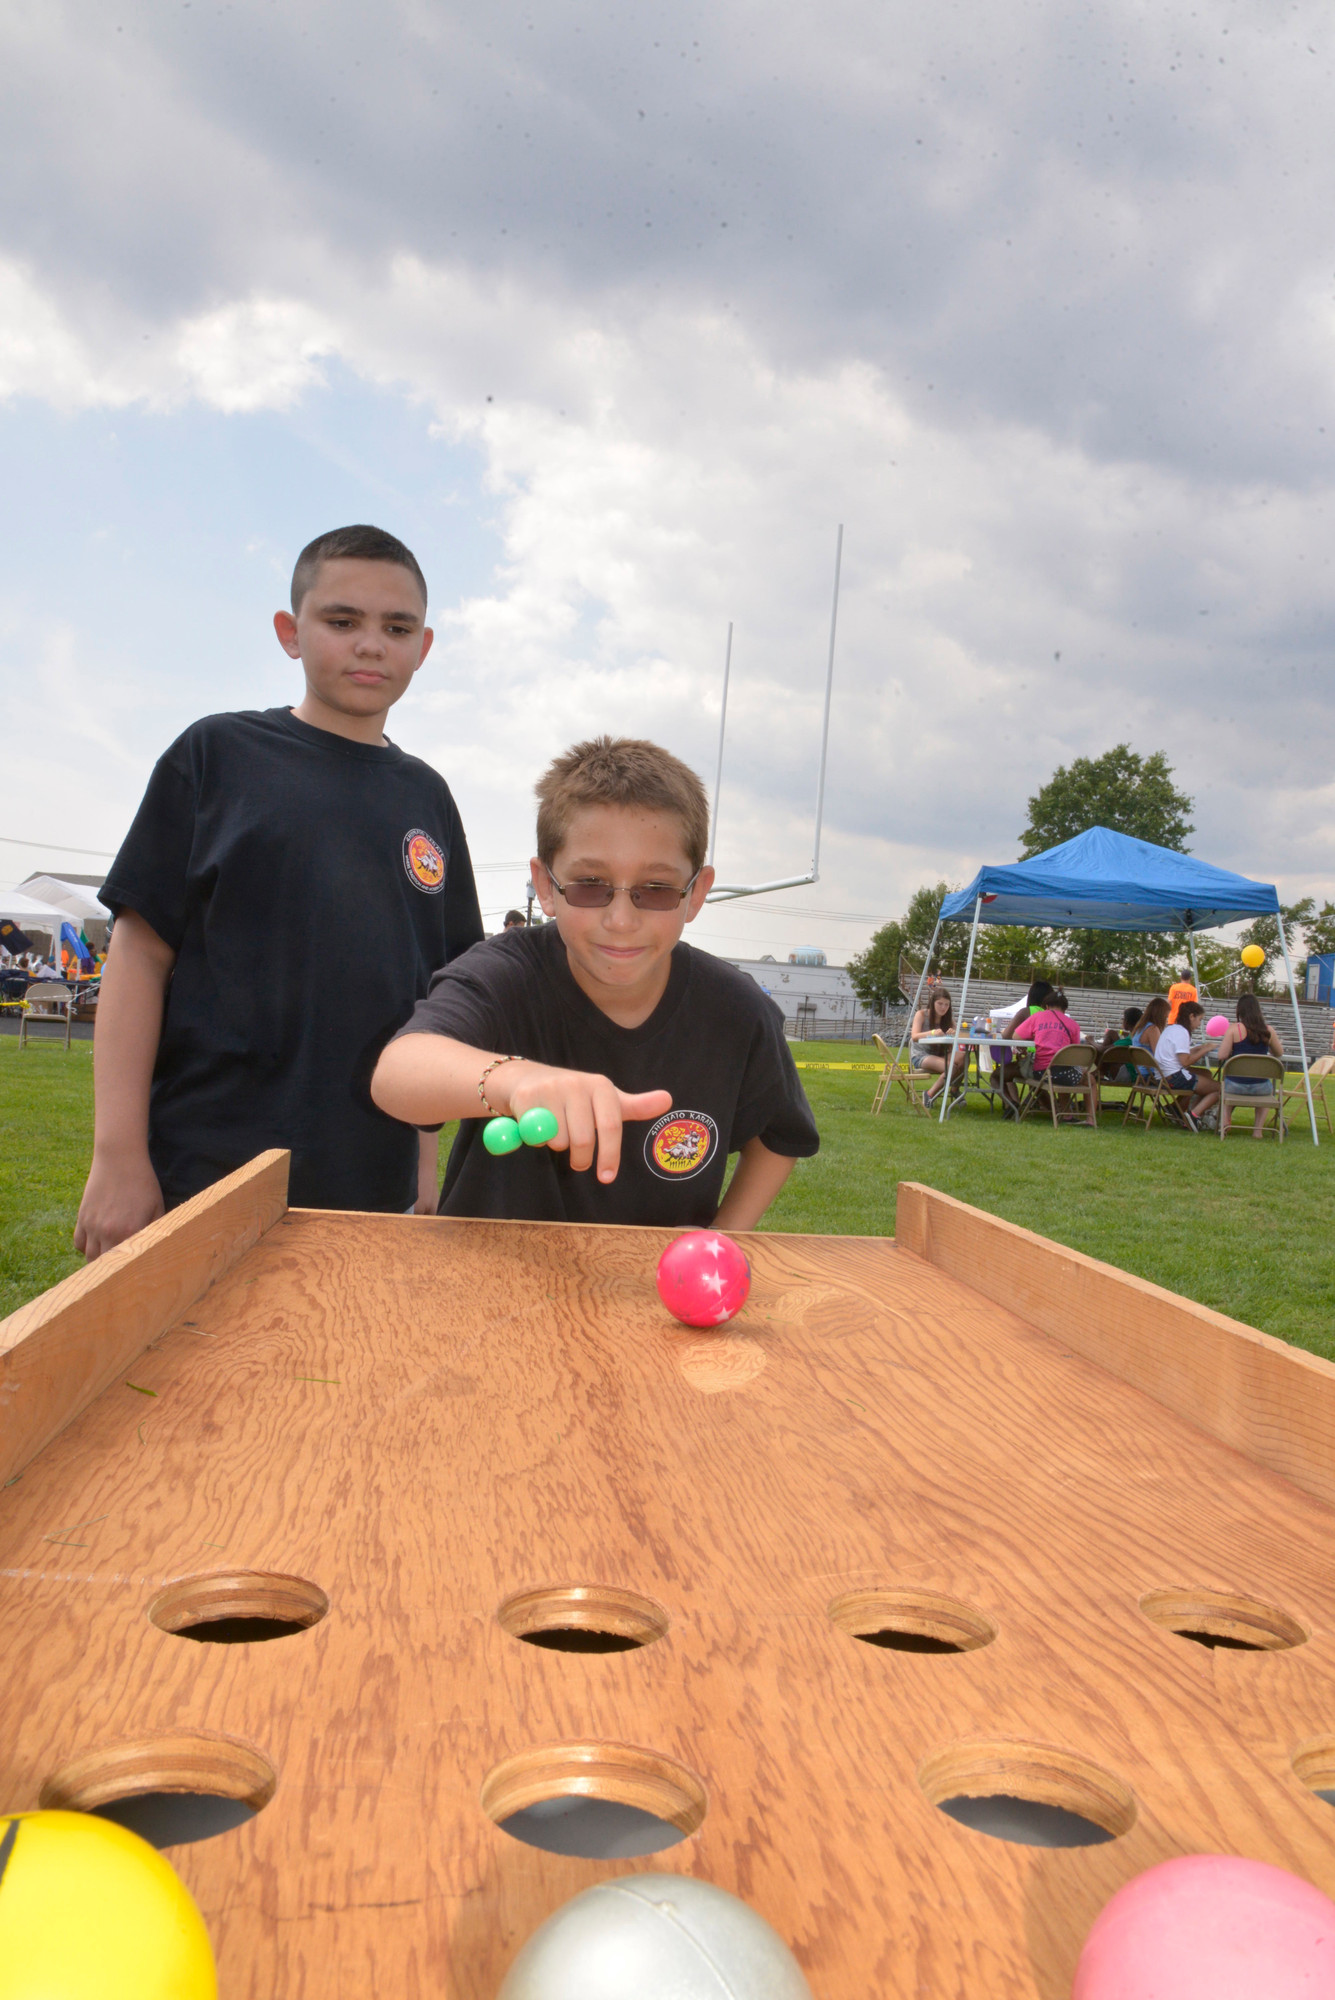 Bobby Erben and Kevin Duryea, both 11, played skeeball — one of the numerous attractions at Baldwinpalooza.